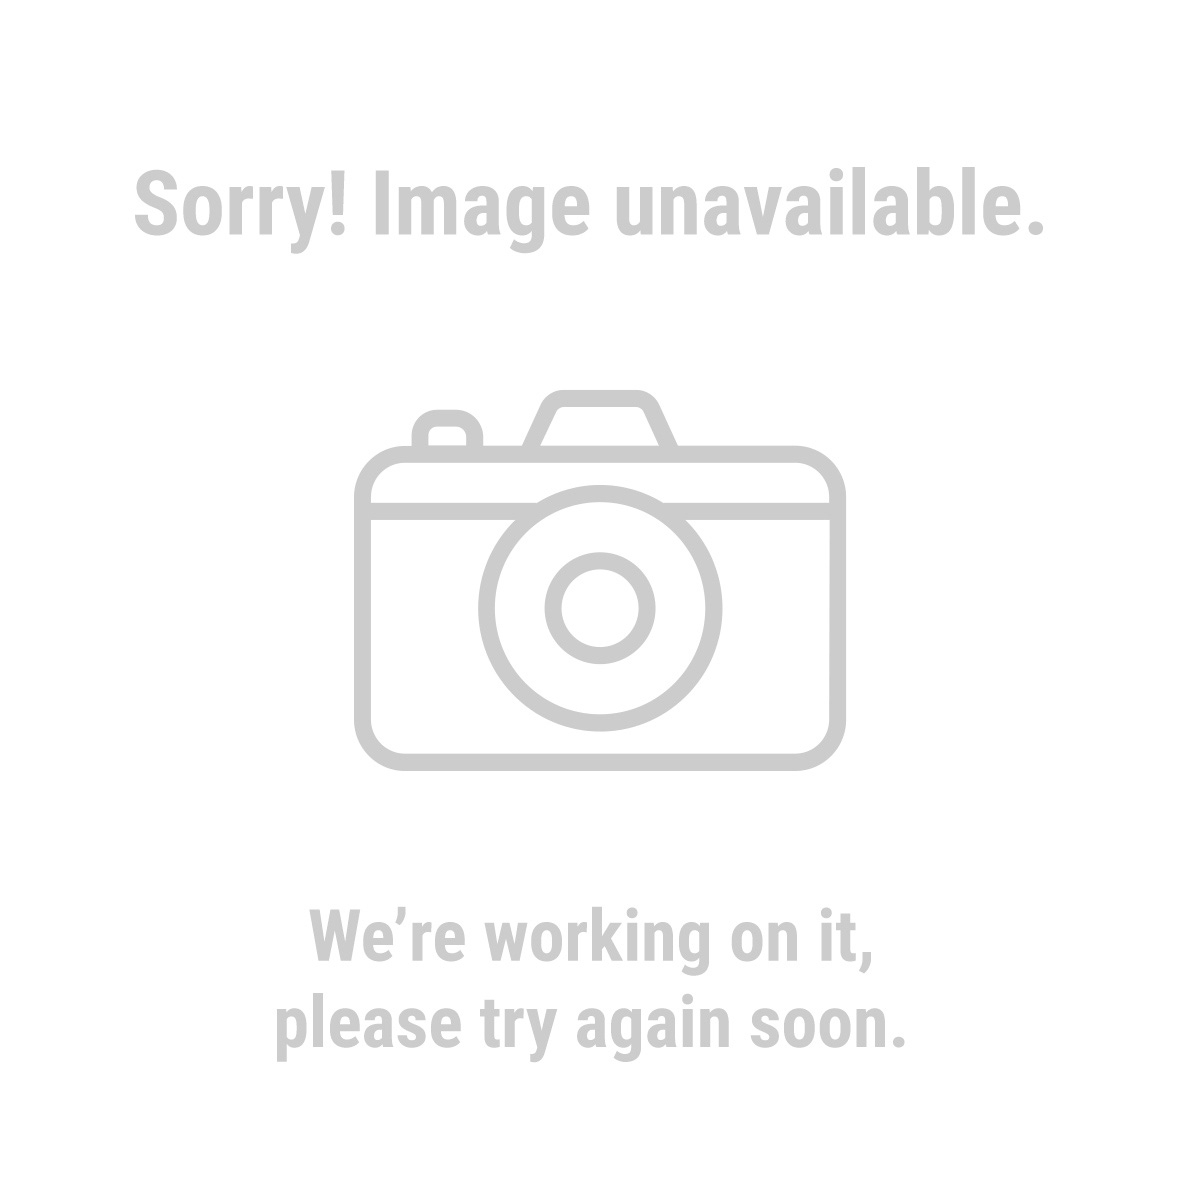 Chicago Electric Welding 62719 90 Amp-AC, 120 Volt, Flux Cored Welder